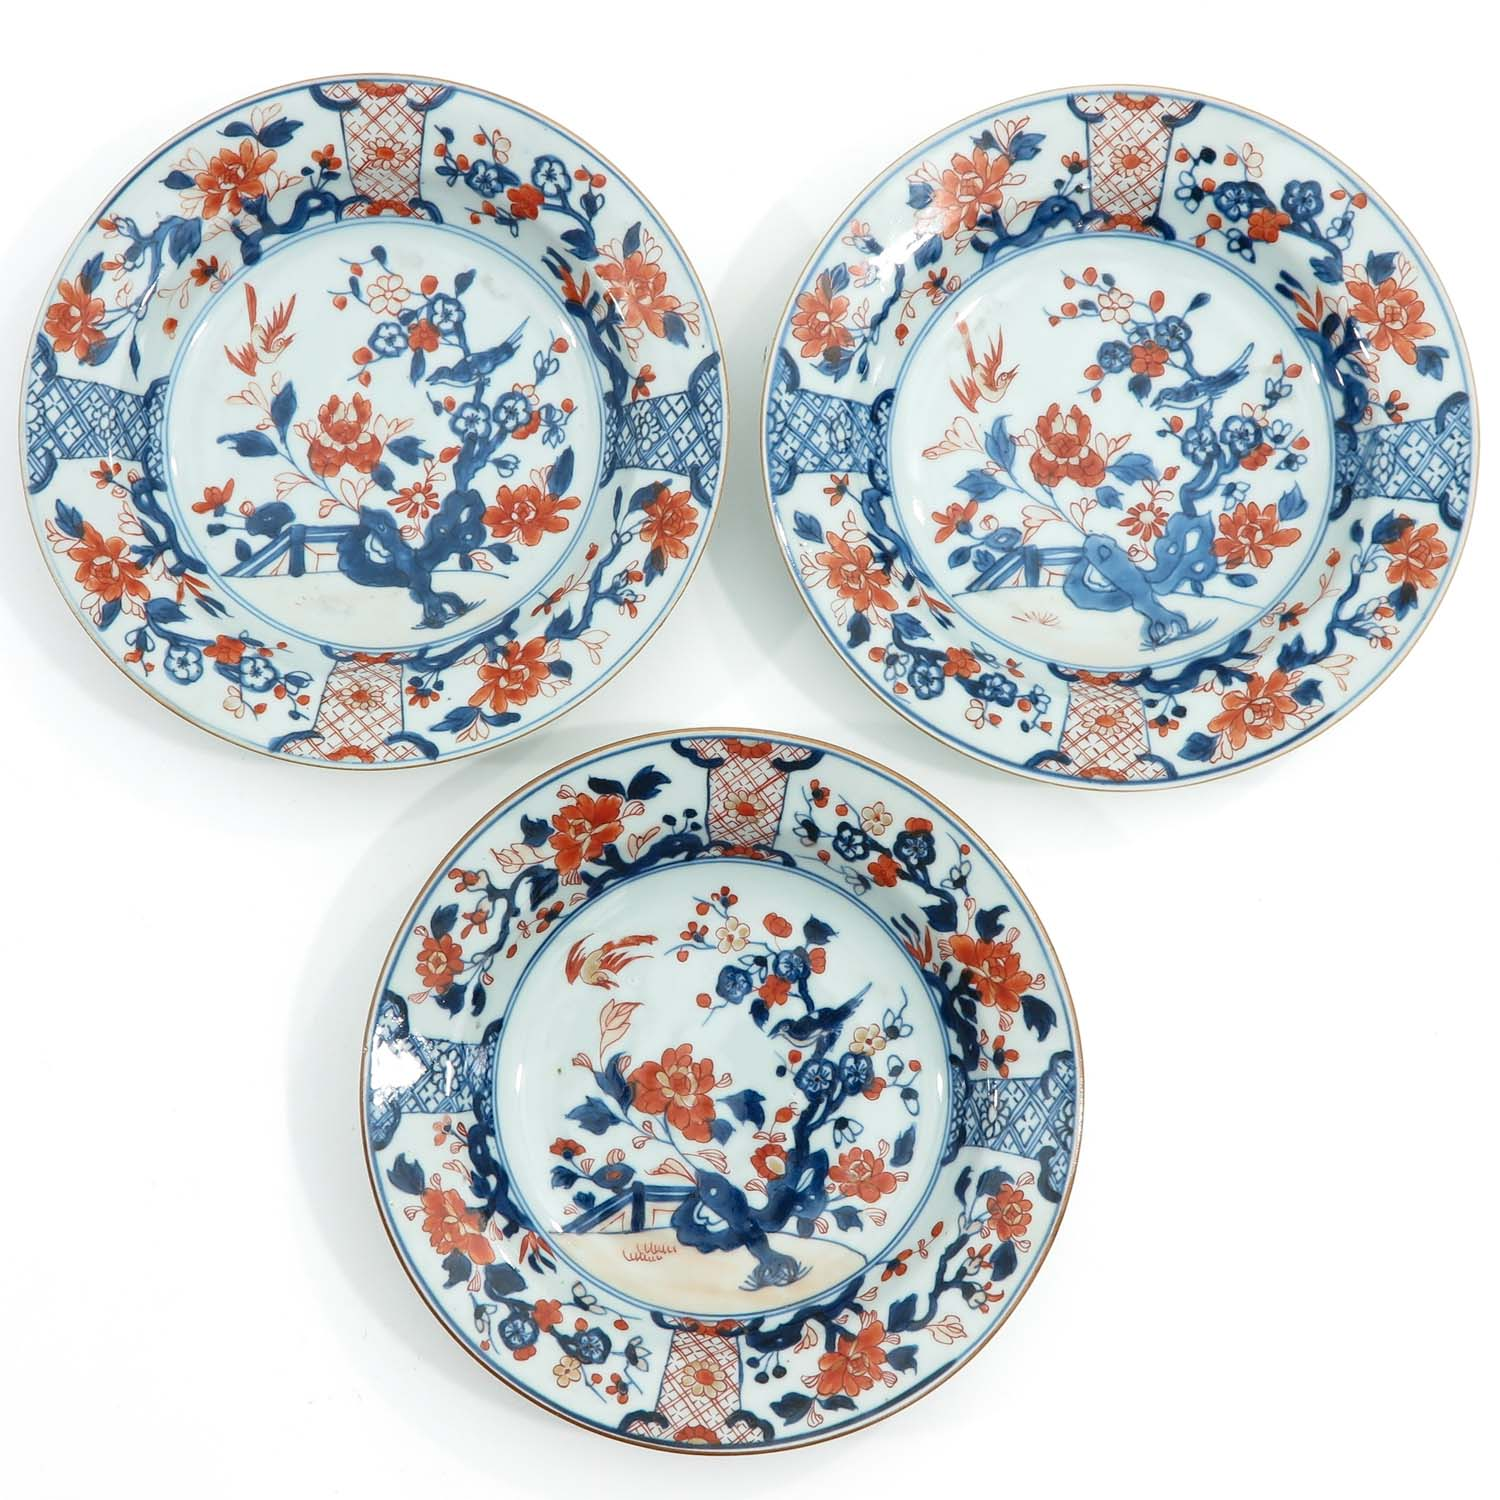 A Collection of 8 Imari Decor Plates - Image 7 of 10